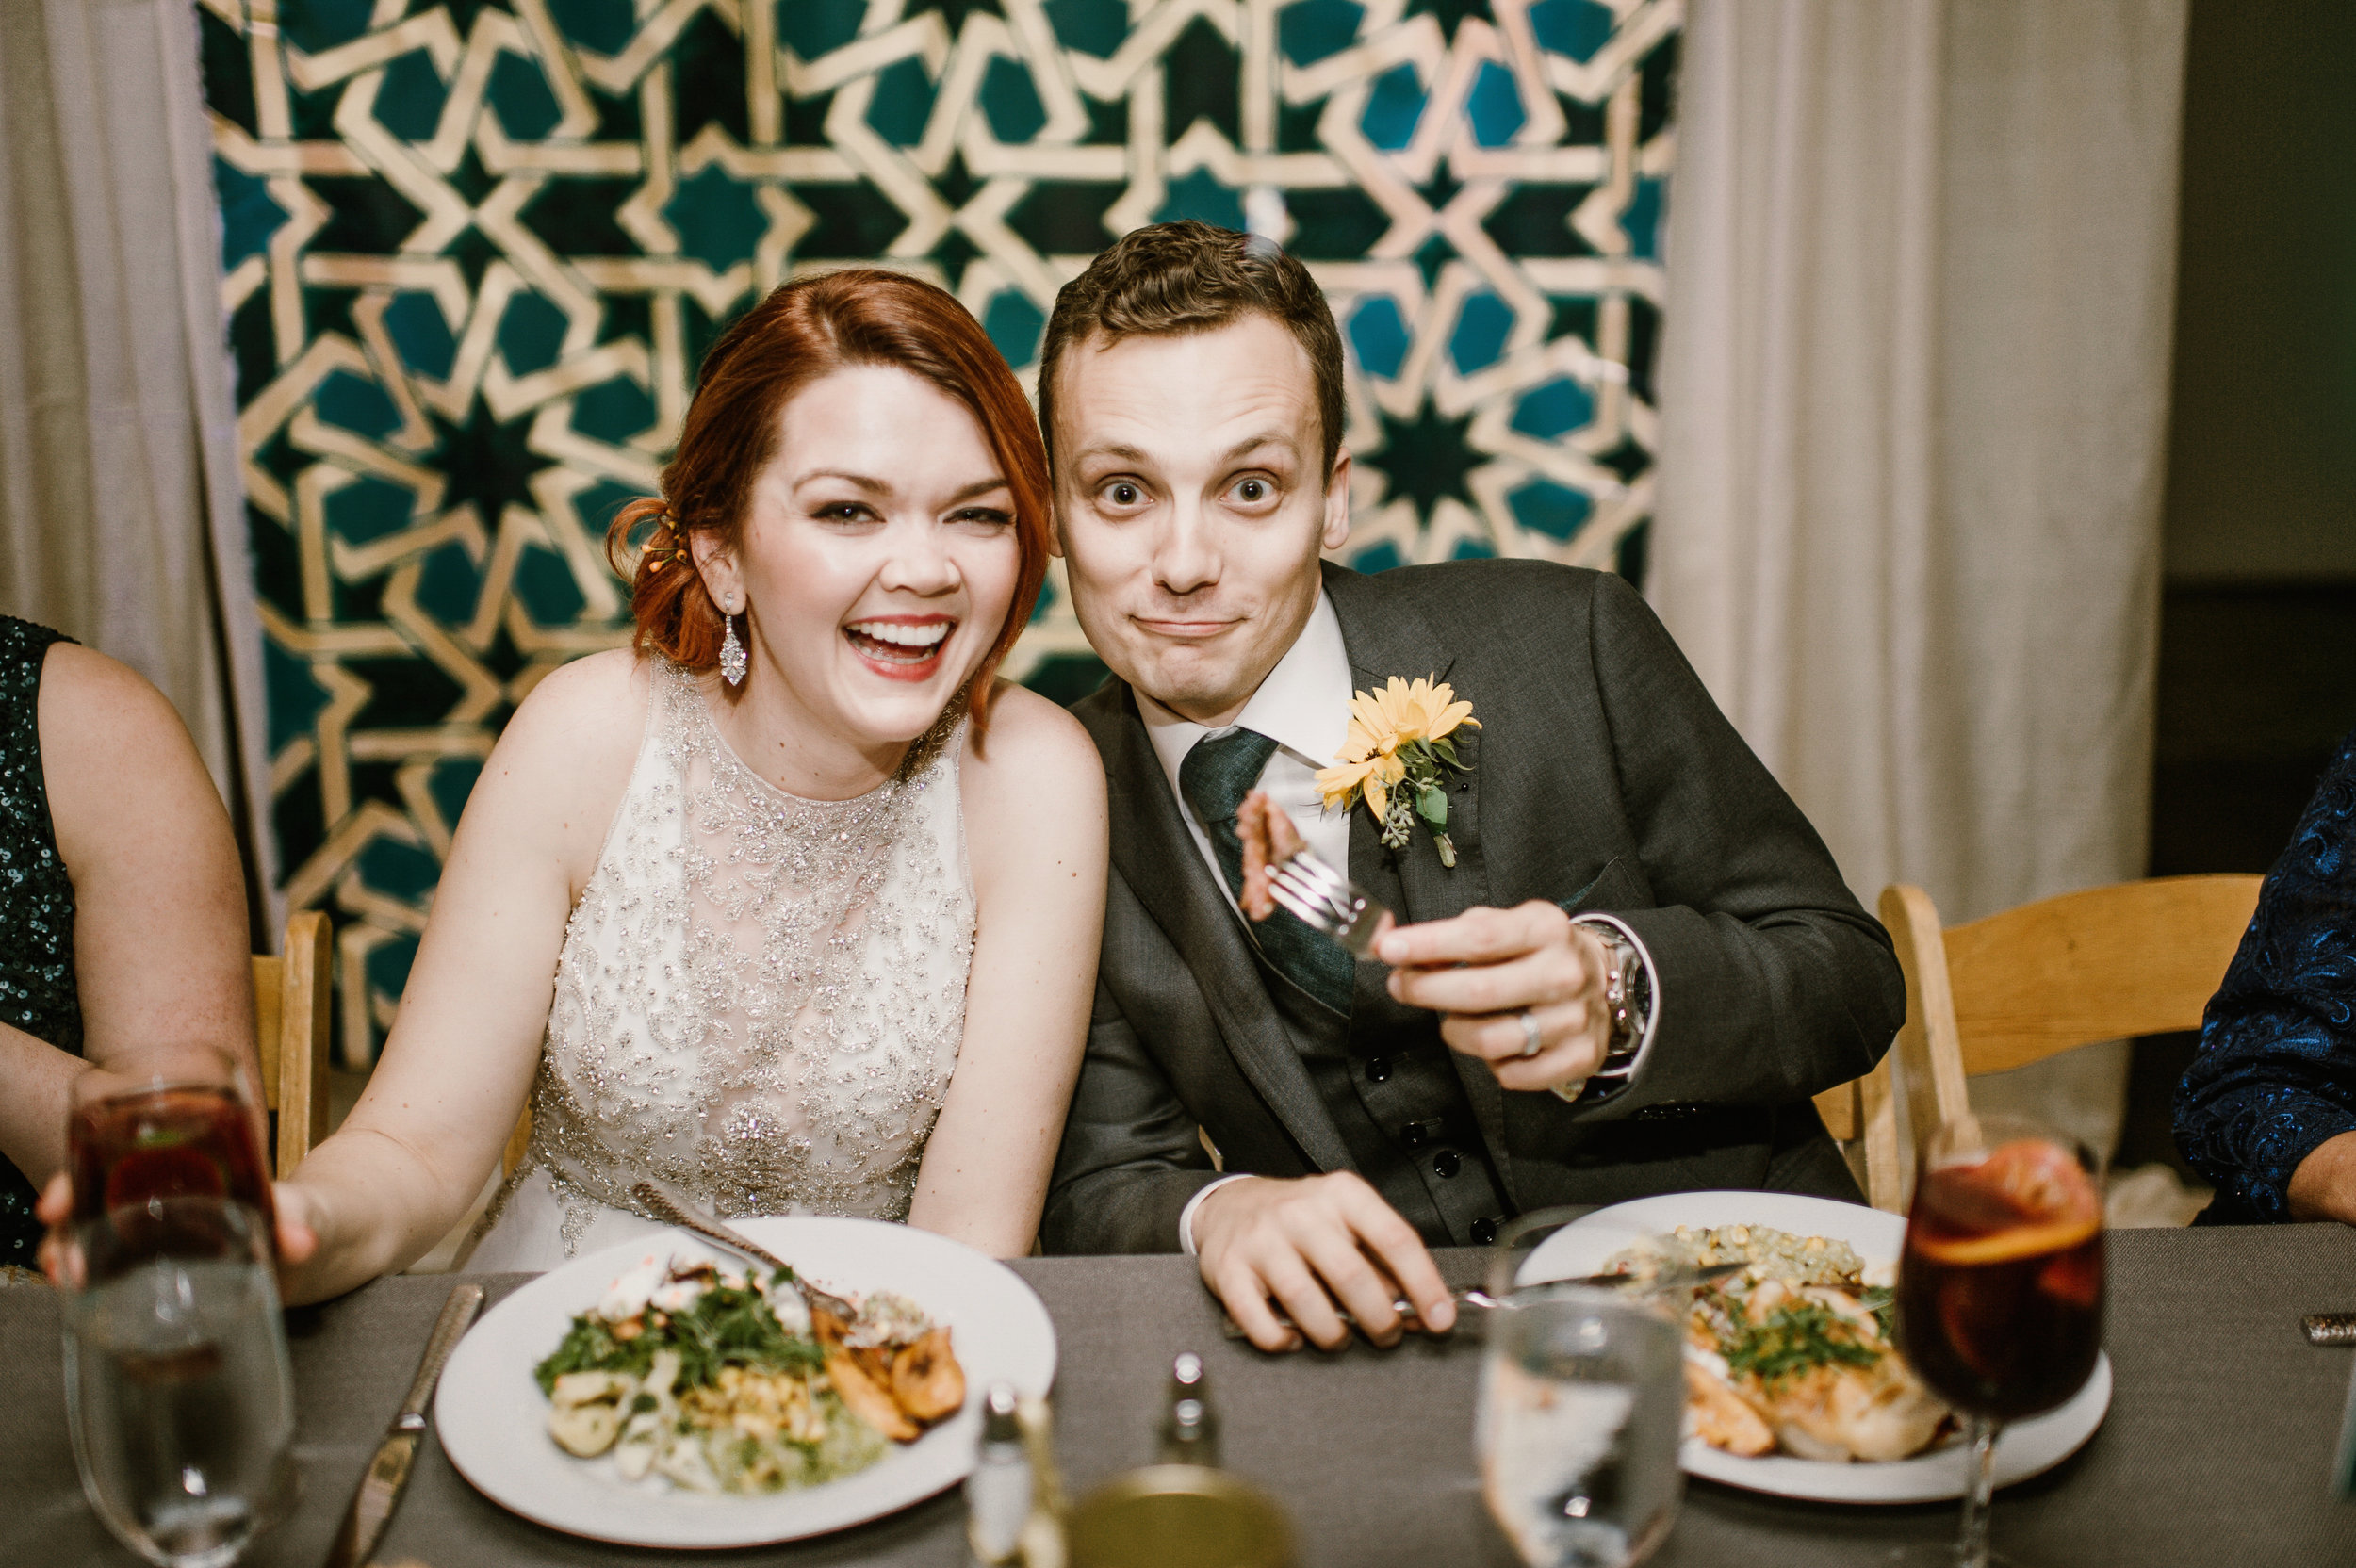 Our wedding day! Photo by Carly Bish.